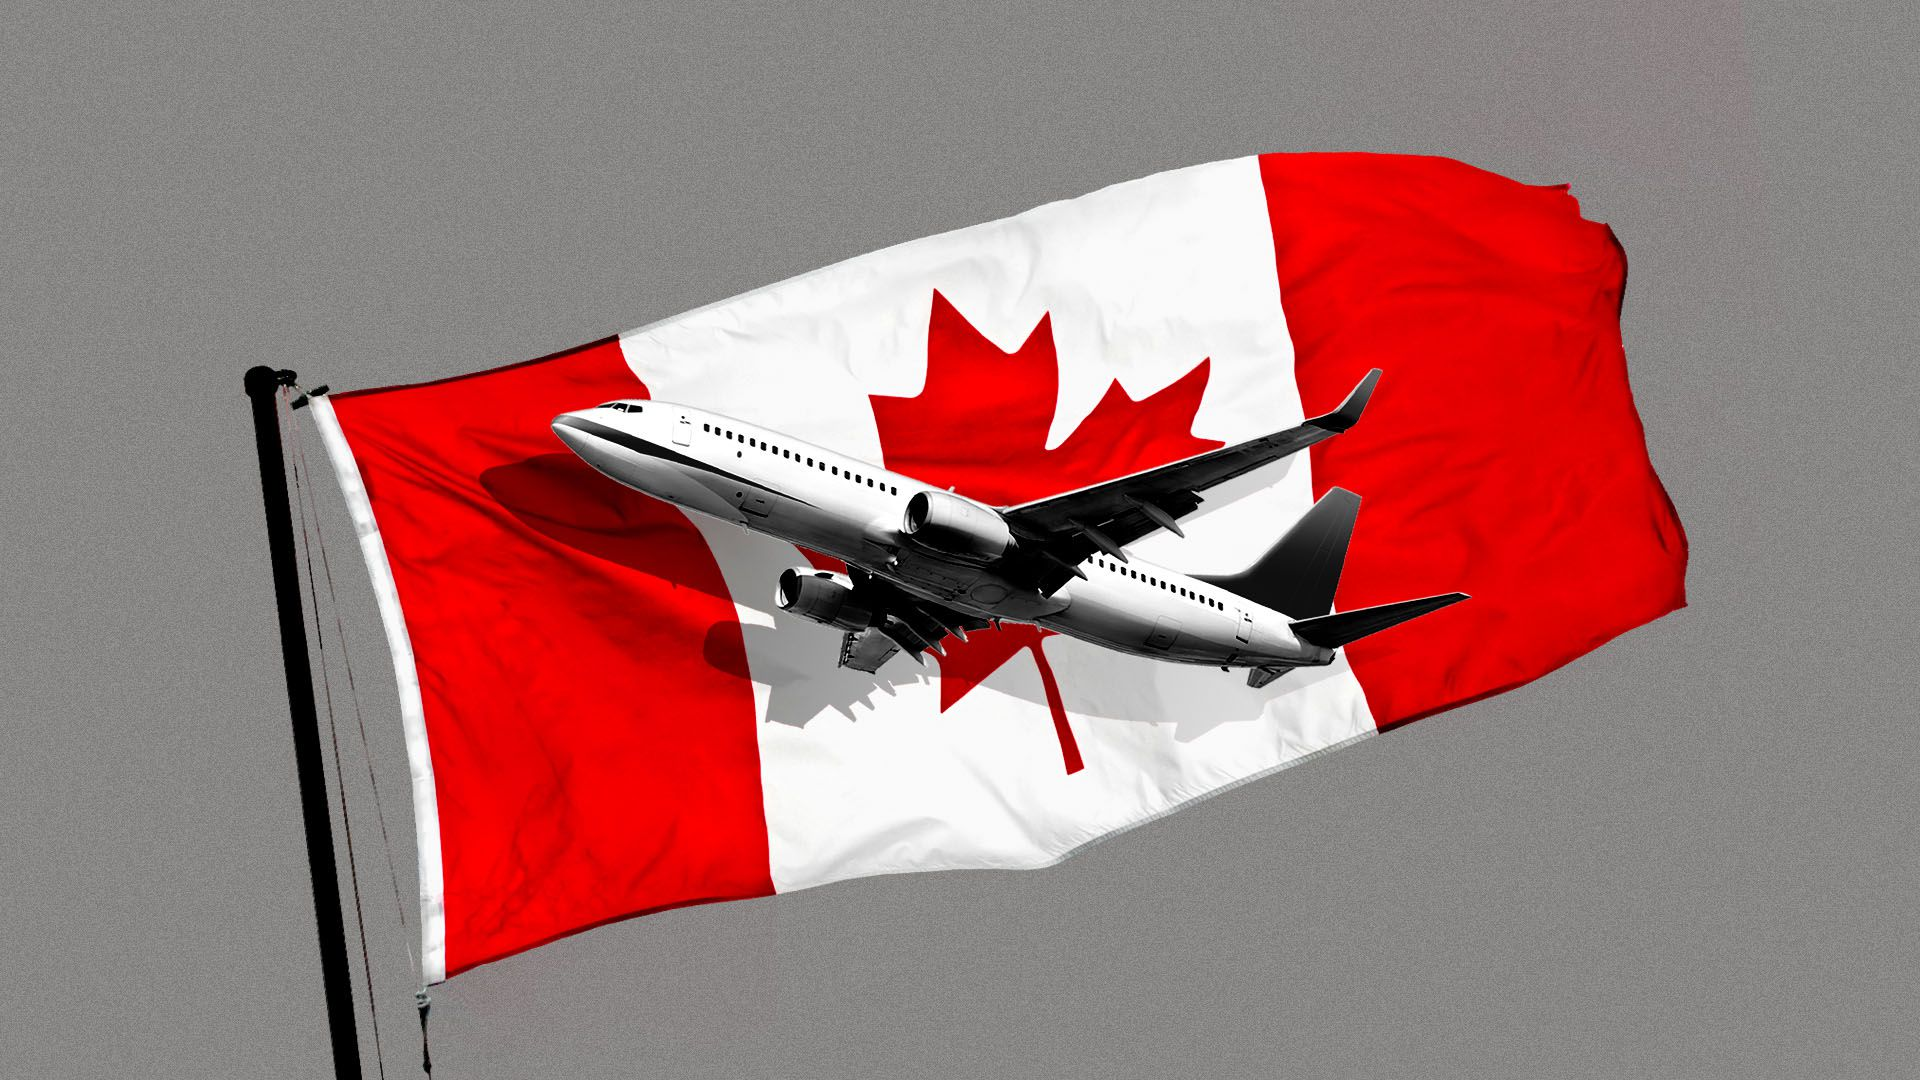 Illustration of an airplane in front of the Canadian flag